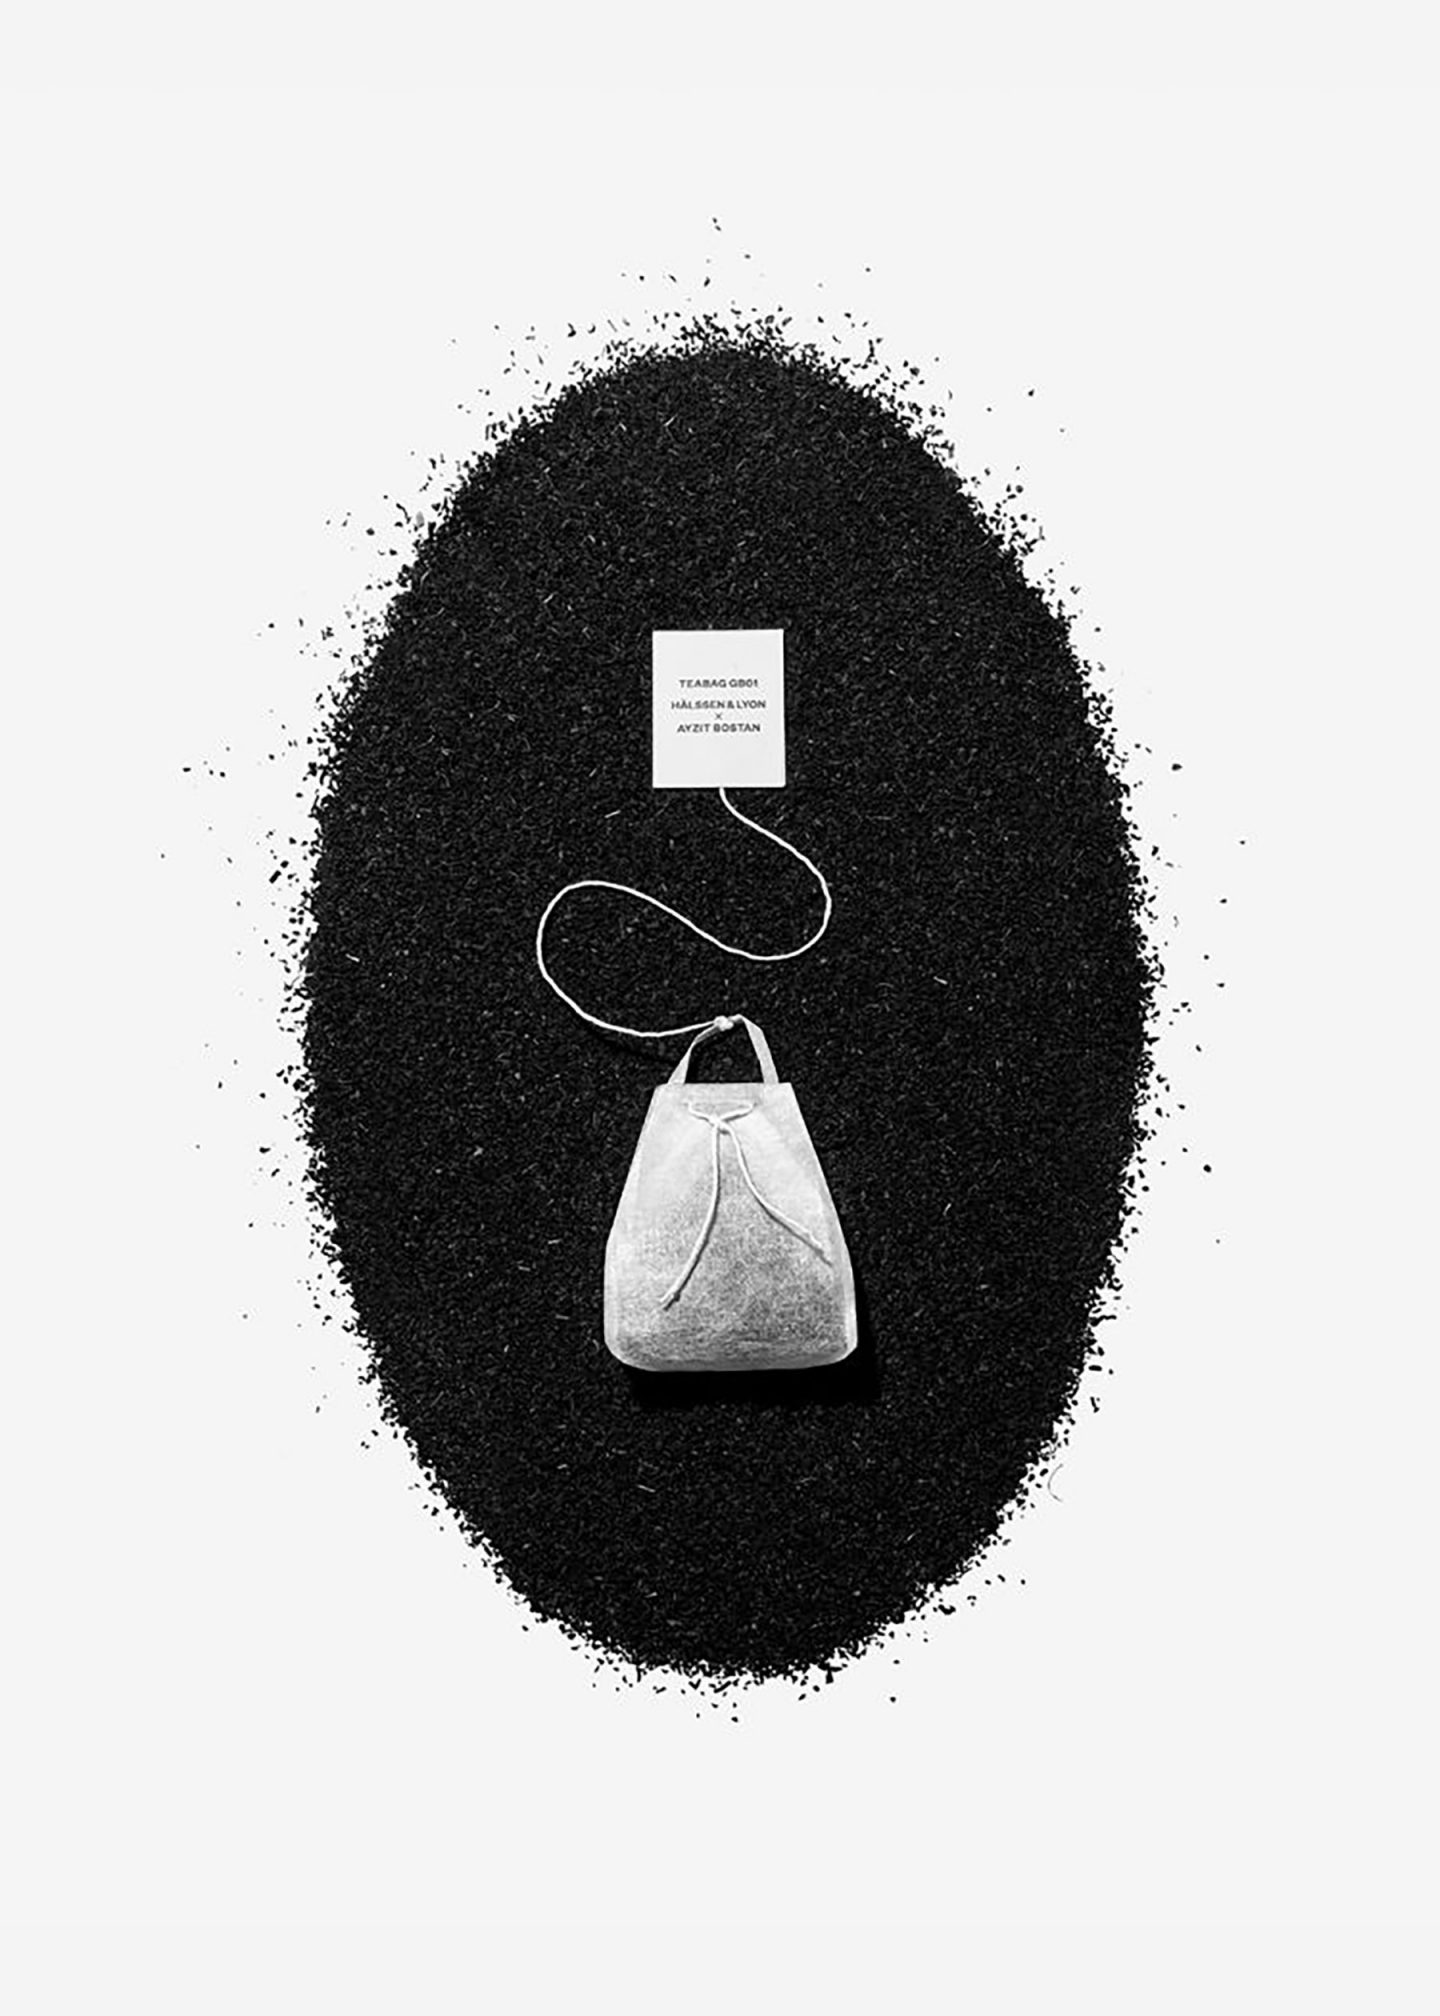 iGNANT-Design-Halssen-&-Lyon-Ayzit-Bostan-The-Teabag-Collection-01